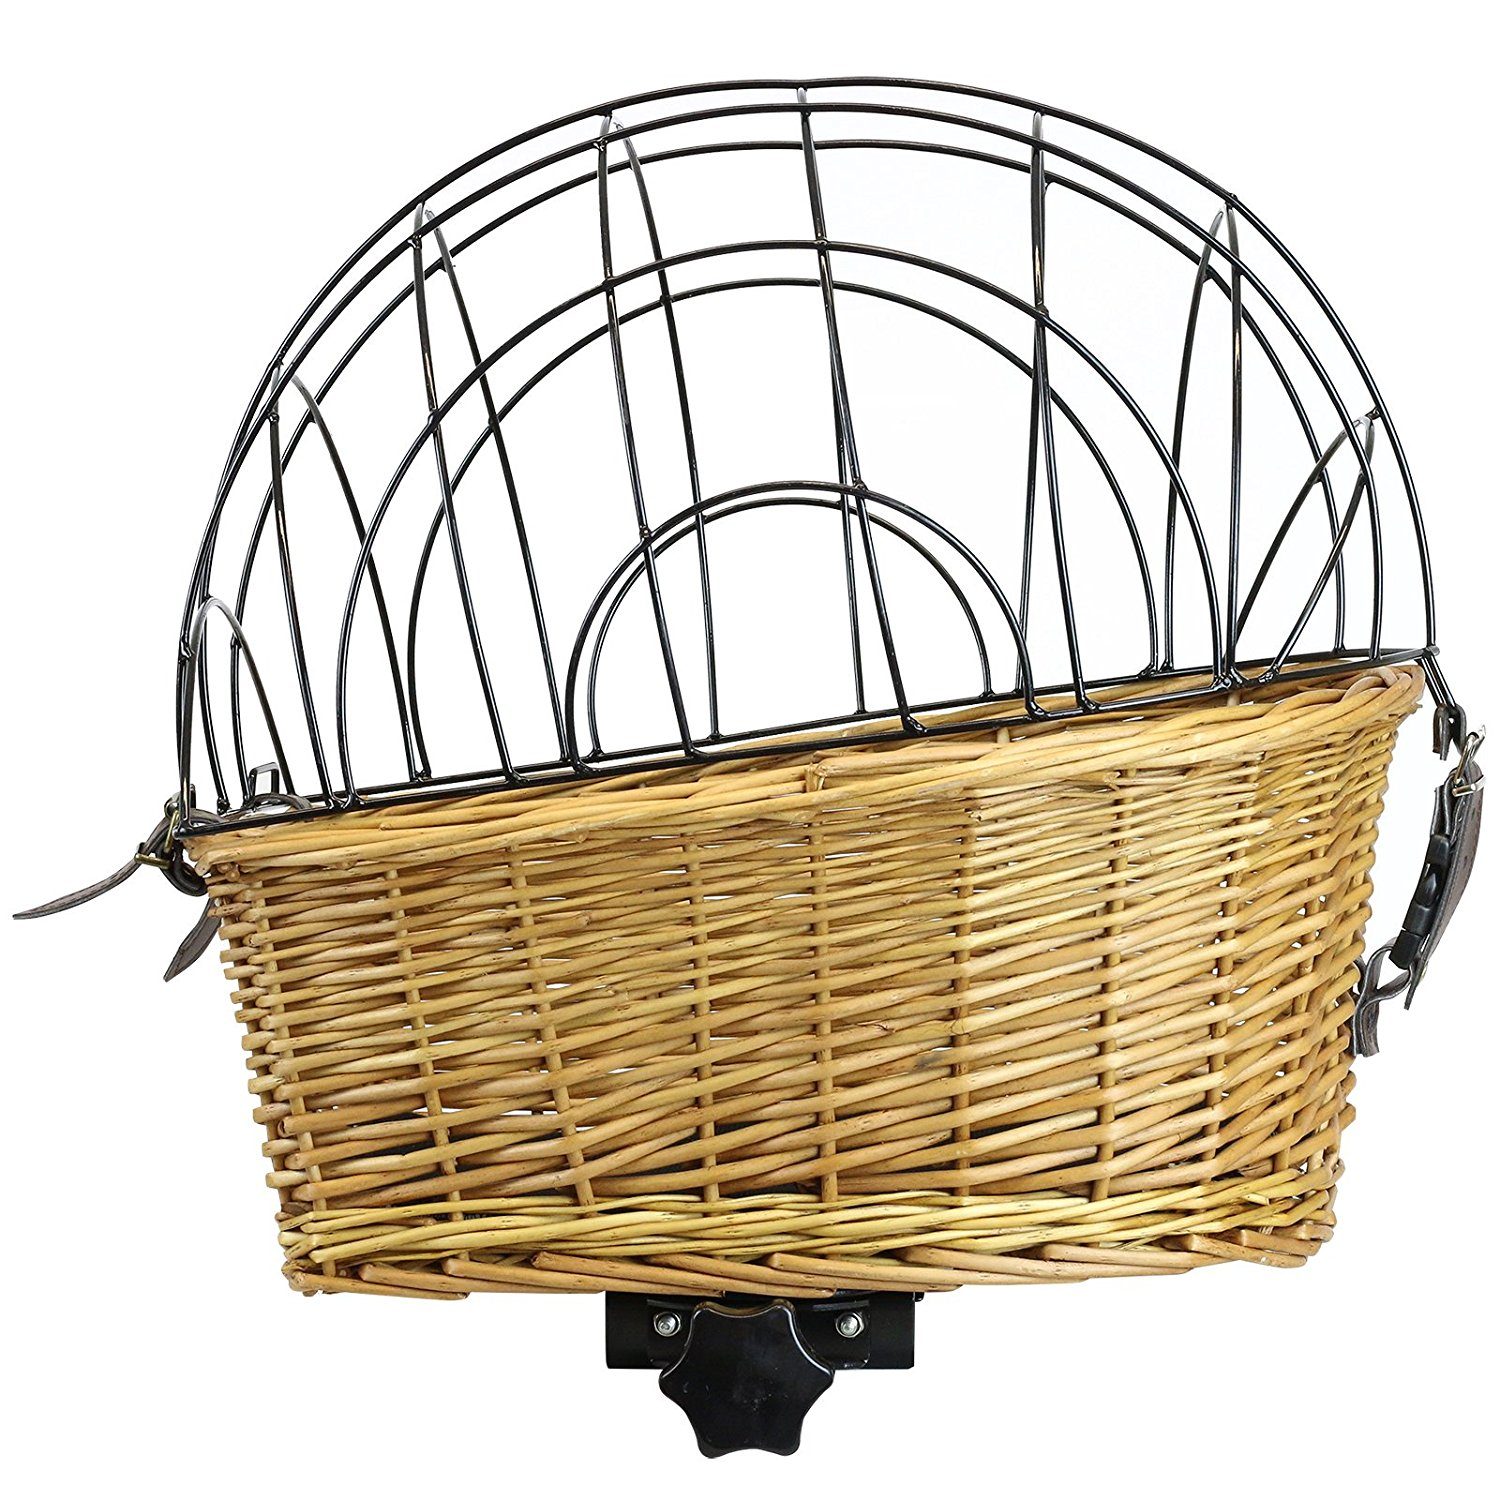 1500x1500 Pedalpro Bicycle Wicker Pet Cage For Rear Rack Amazon.co.uk Pet